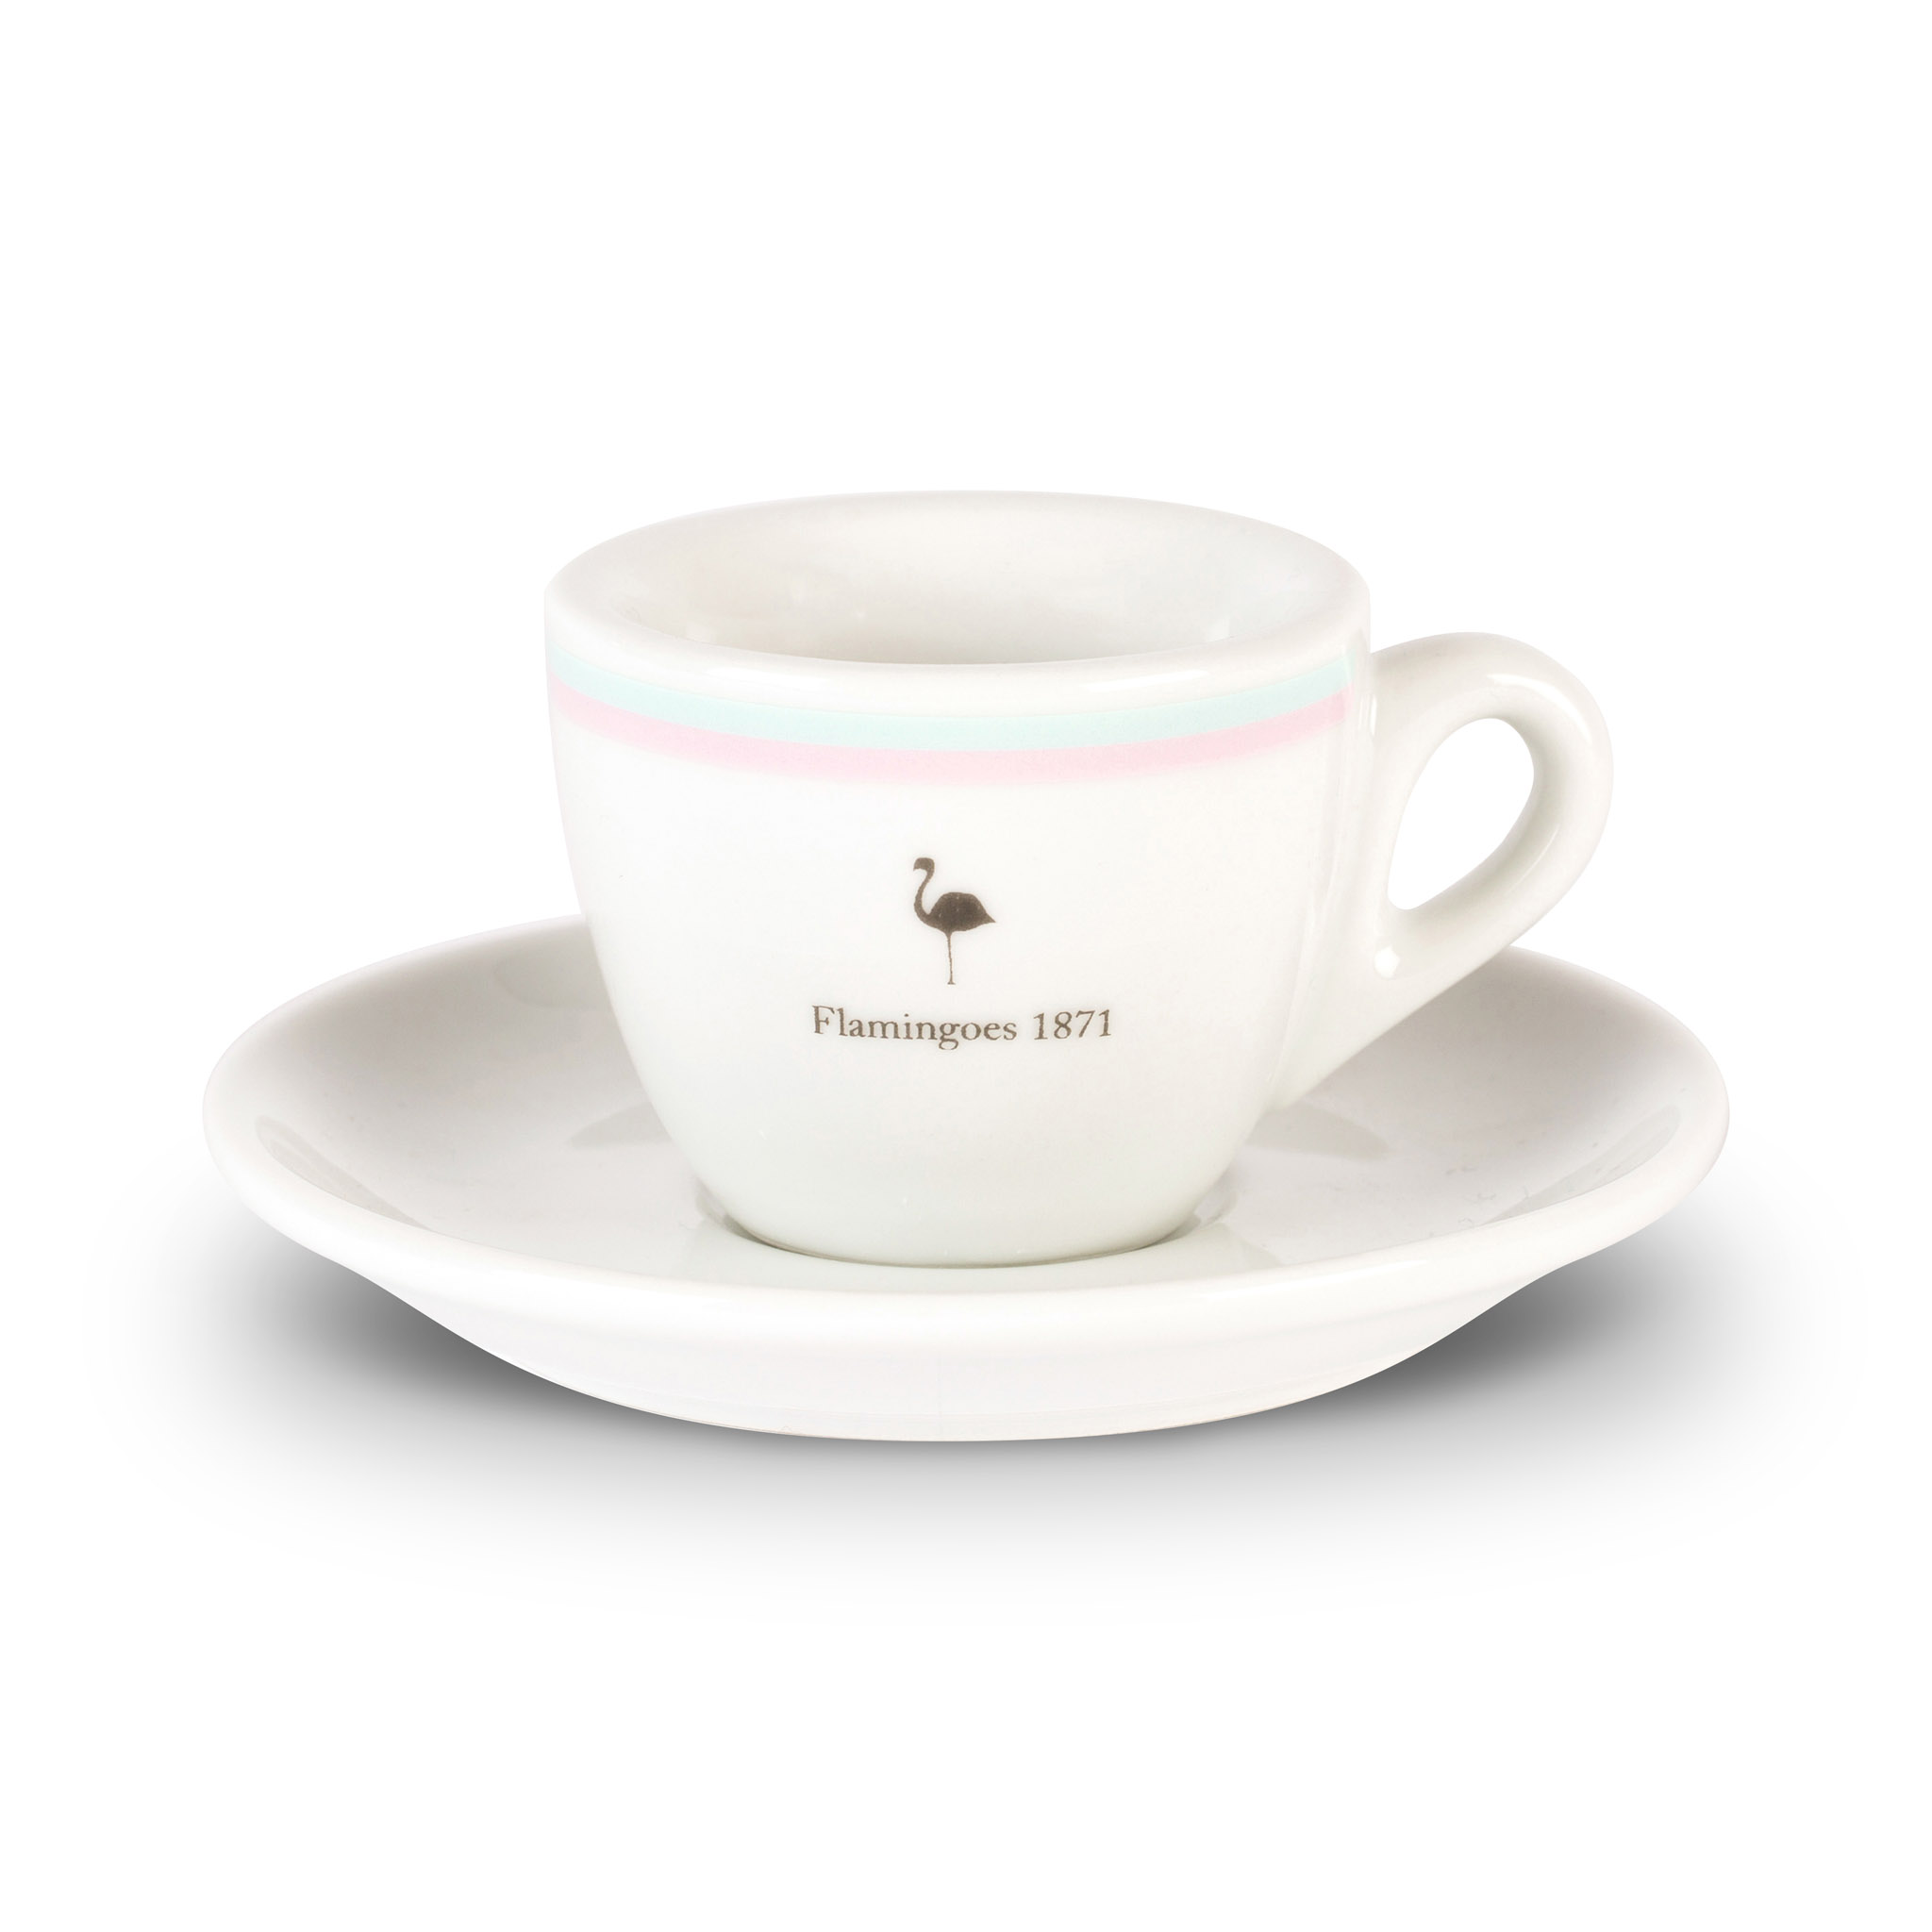 Flamingoes espresso cup and saucer